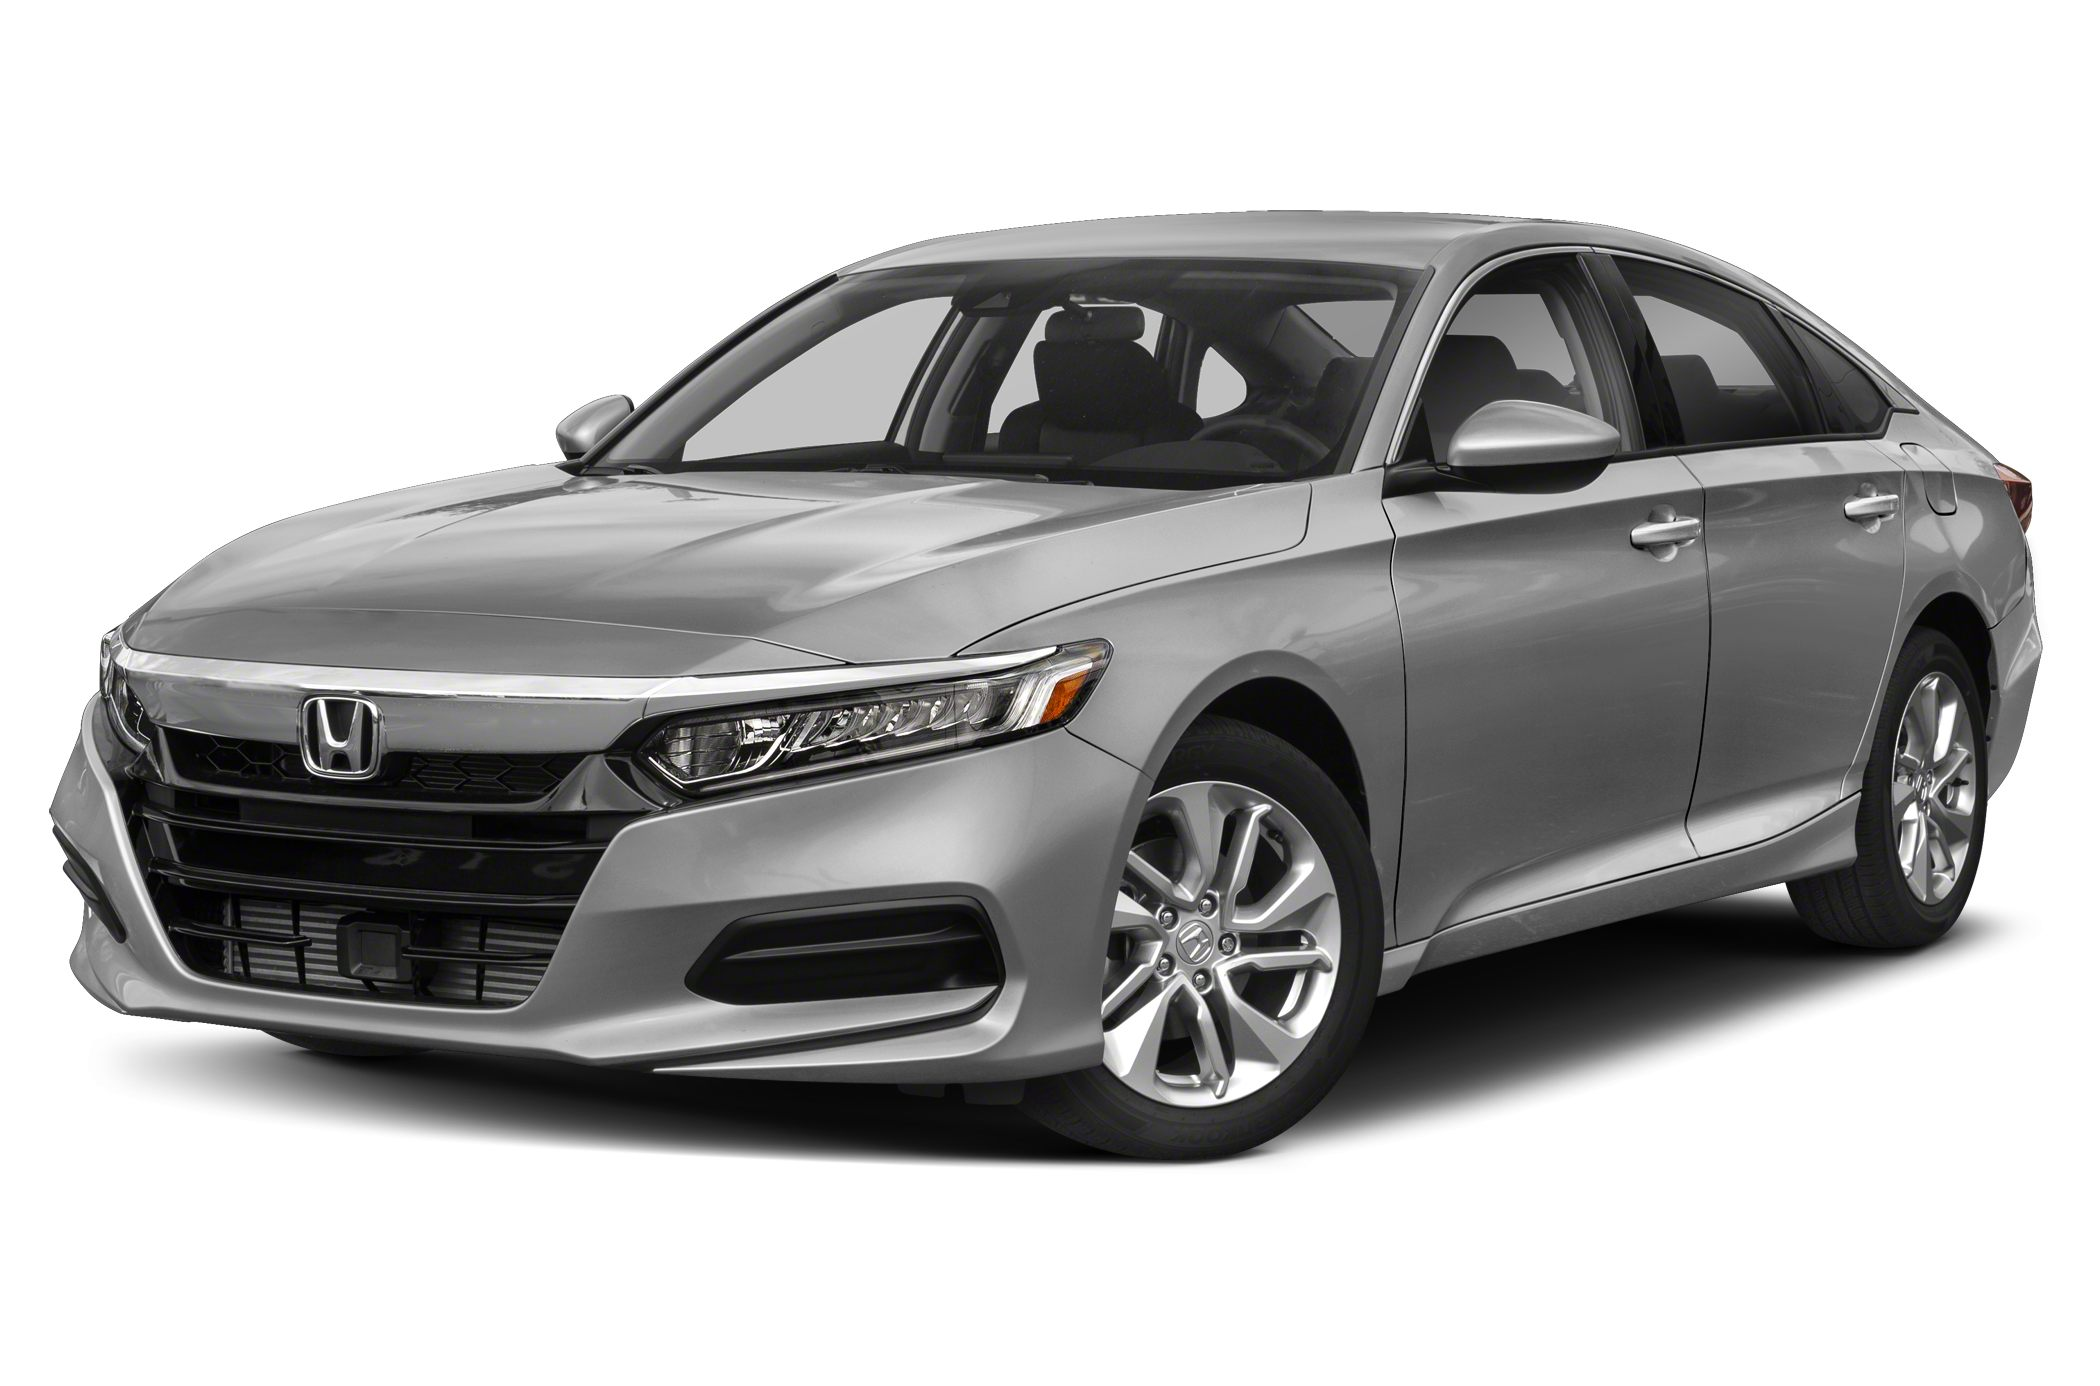 91 A 2019 Honda Accord Sedan Price and Review